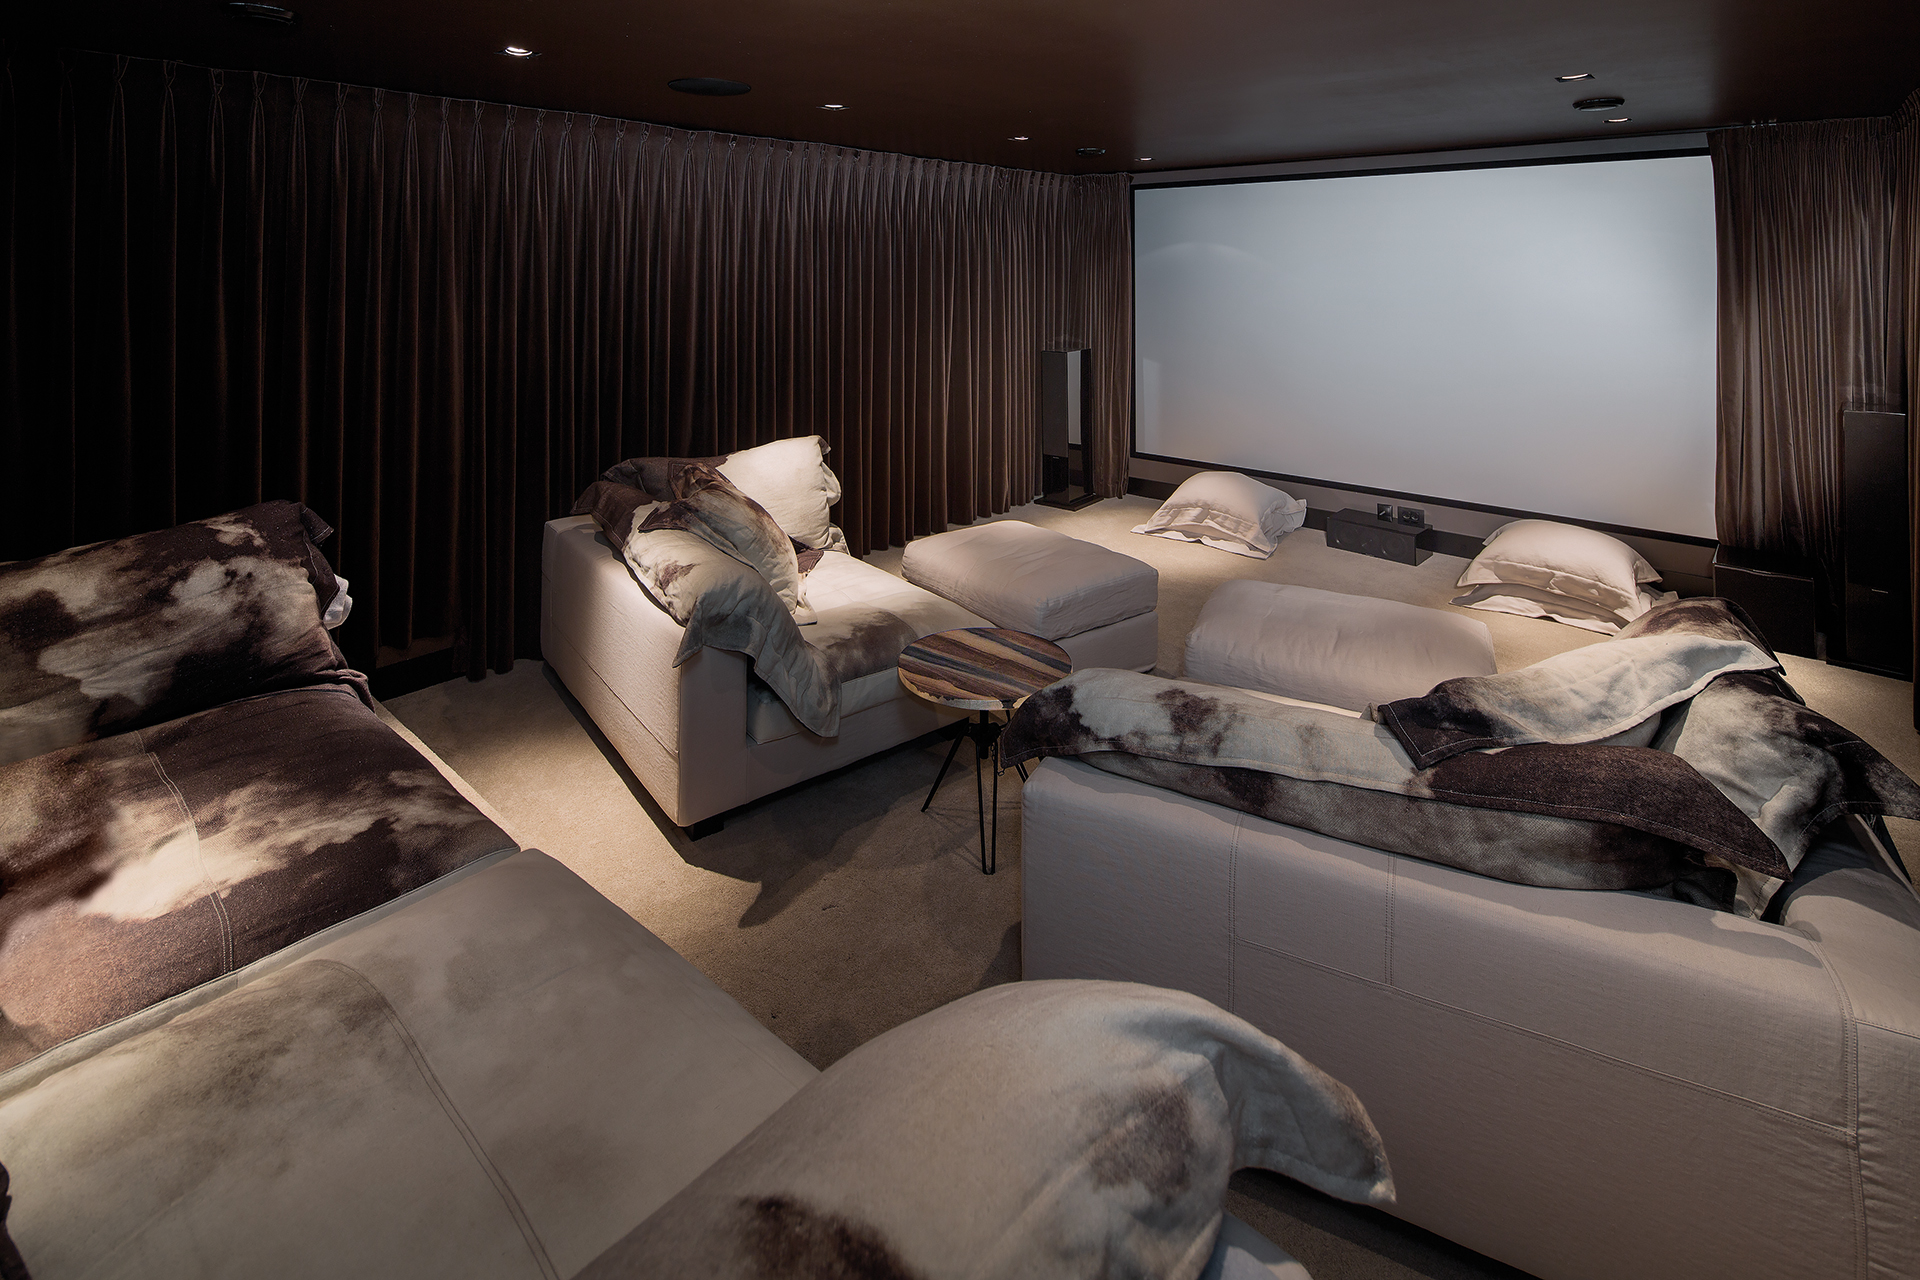 comfortable home cinema with multiple sofas and blankets